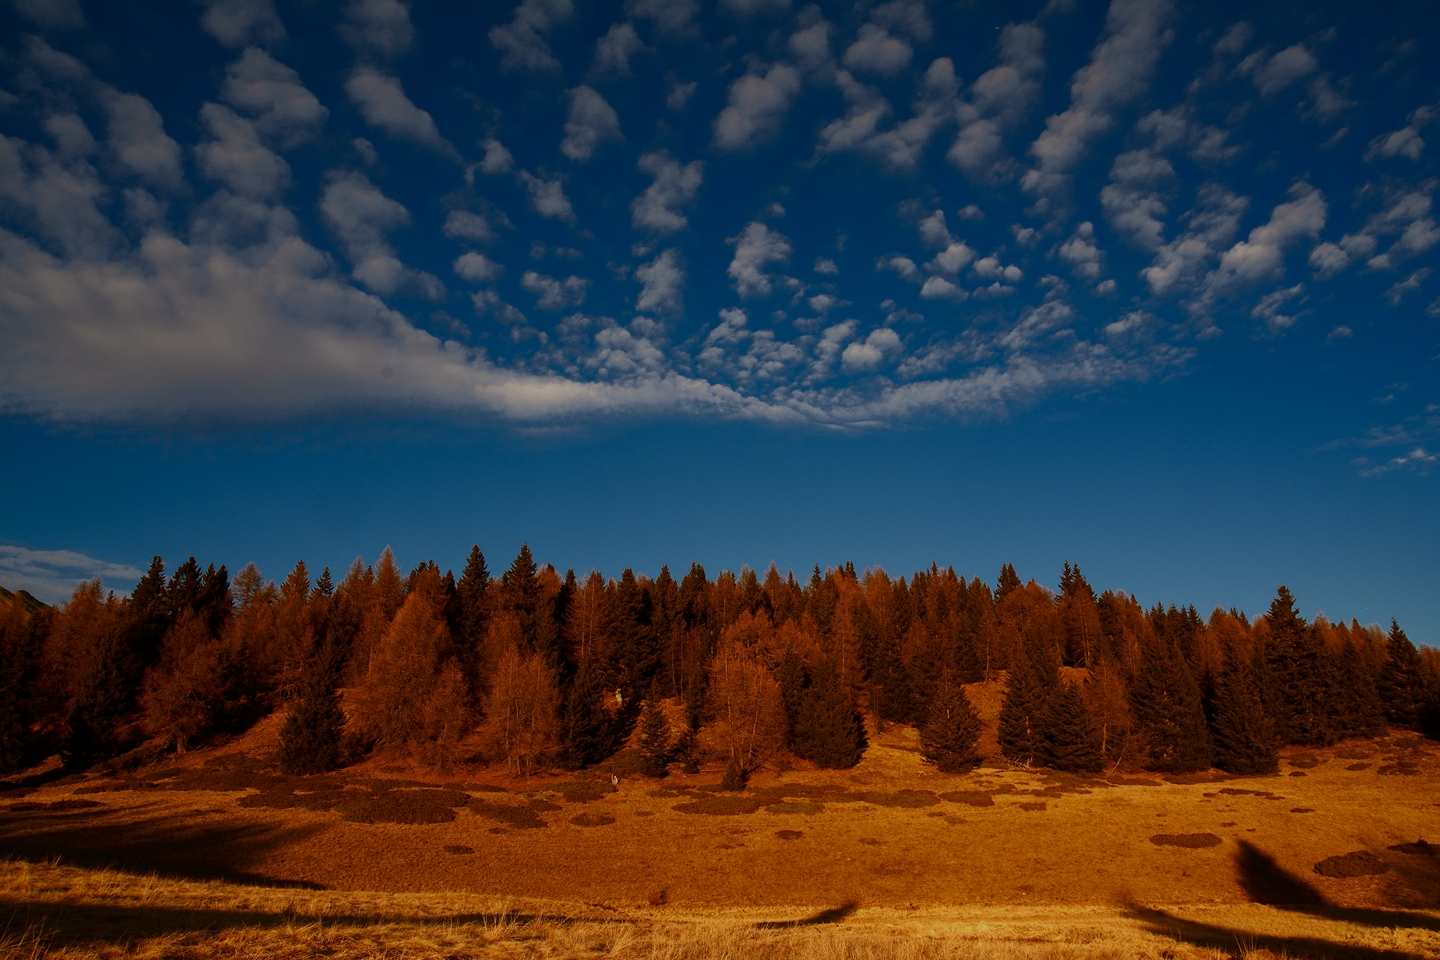 Pastures, forests and sky....